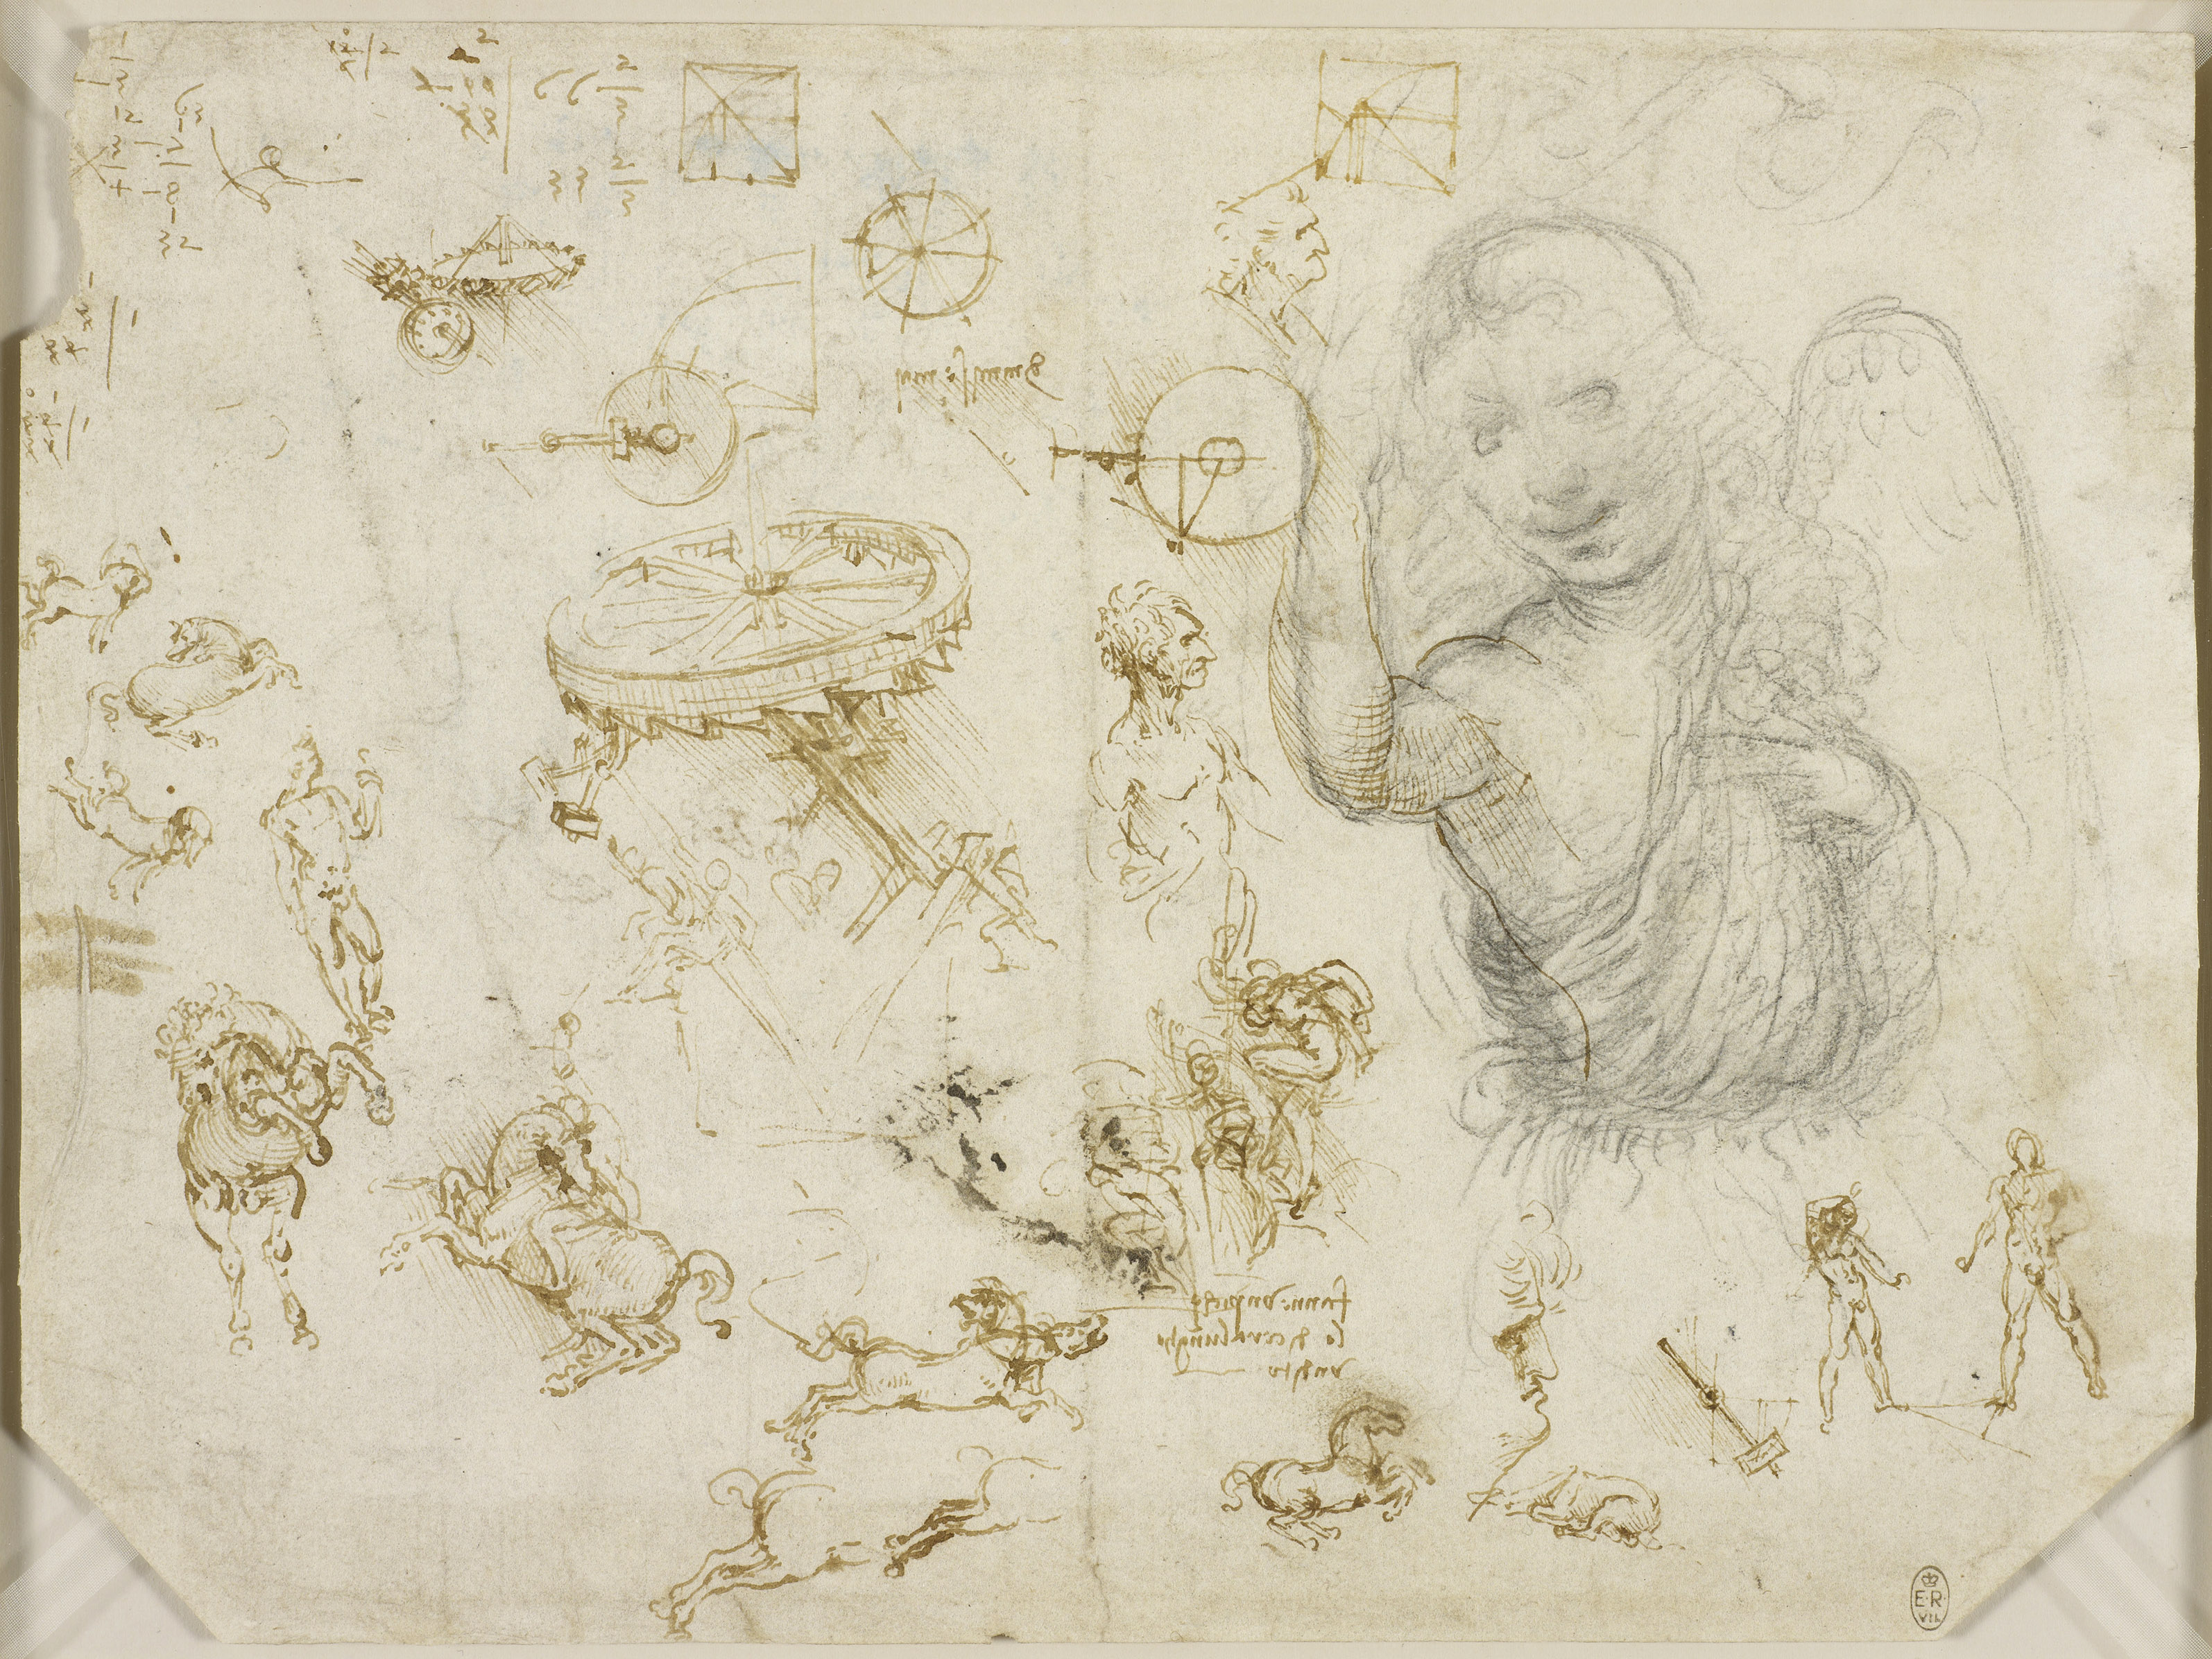 Leonardo da Vinci, Horses and soldiers, mechanics and the Angel of the Annunciation, c.1503-4